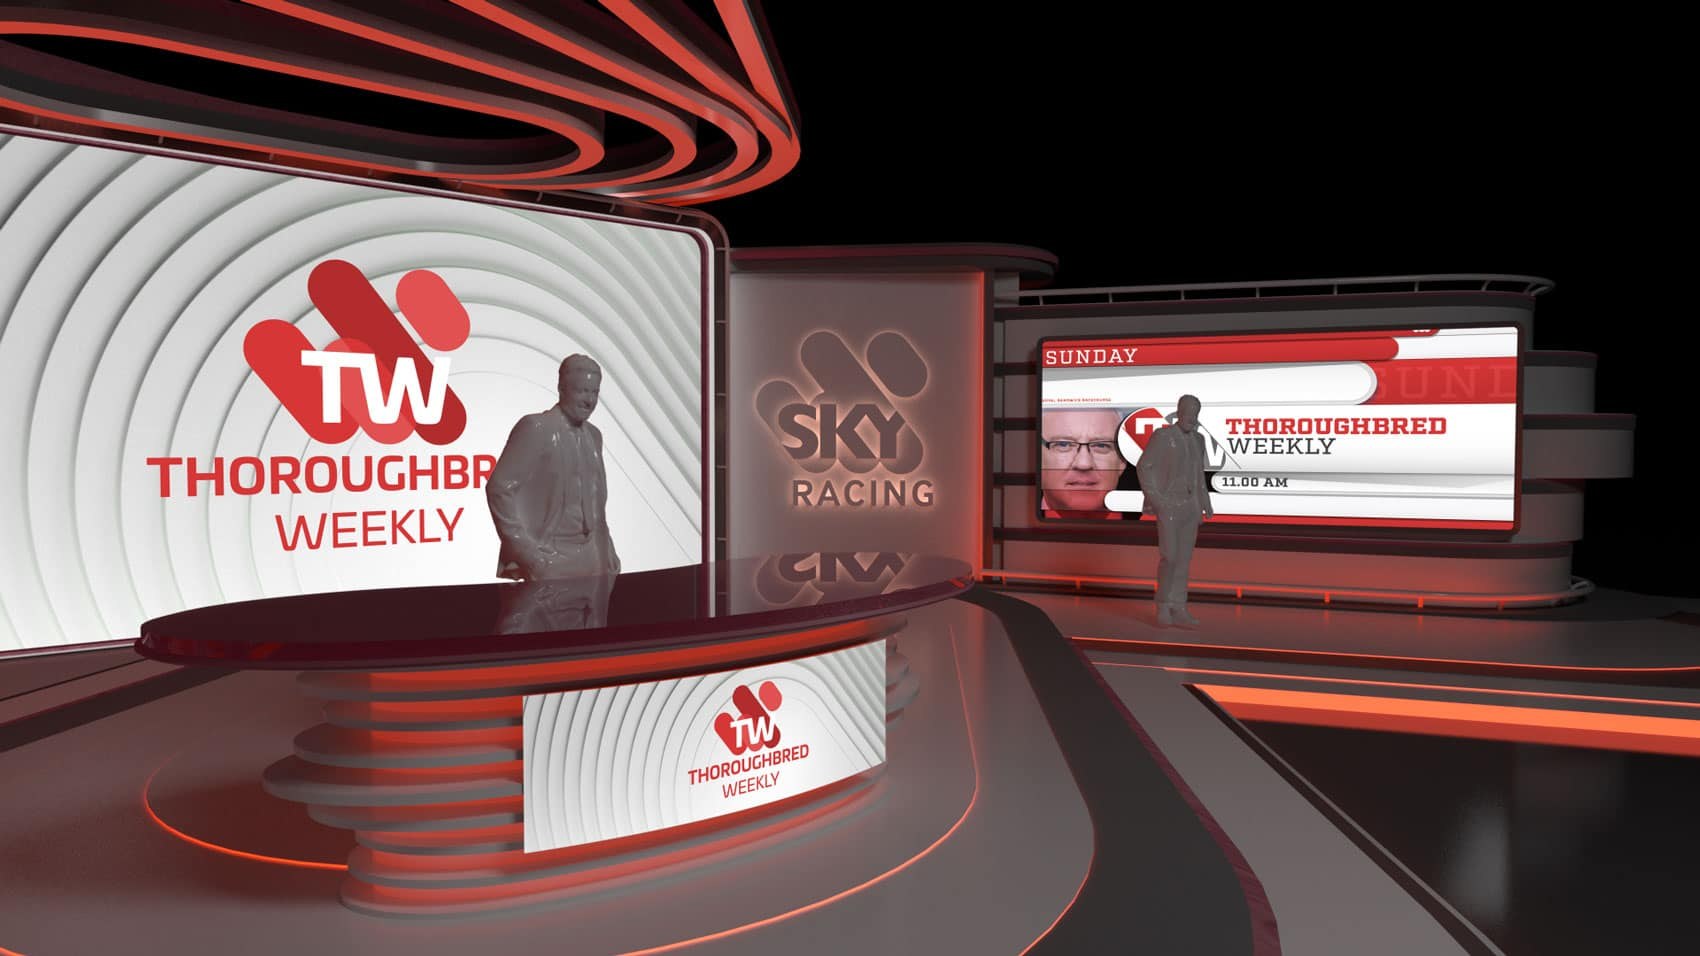 2019 Sky Racing Virtual Set Concept 02 Girraphic